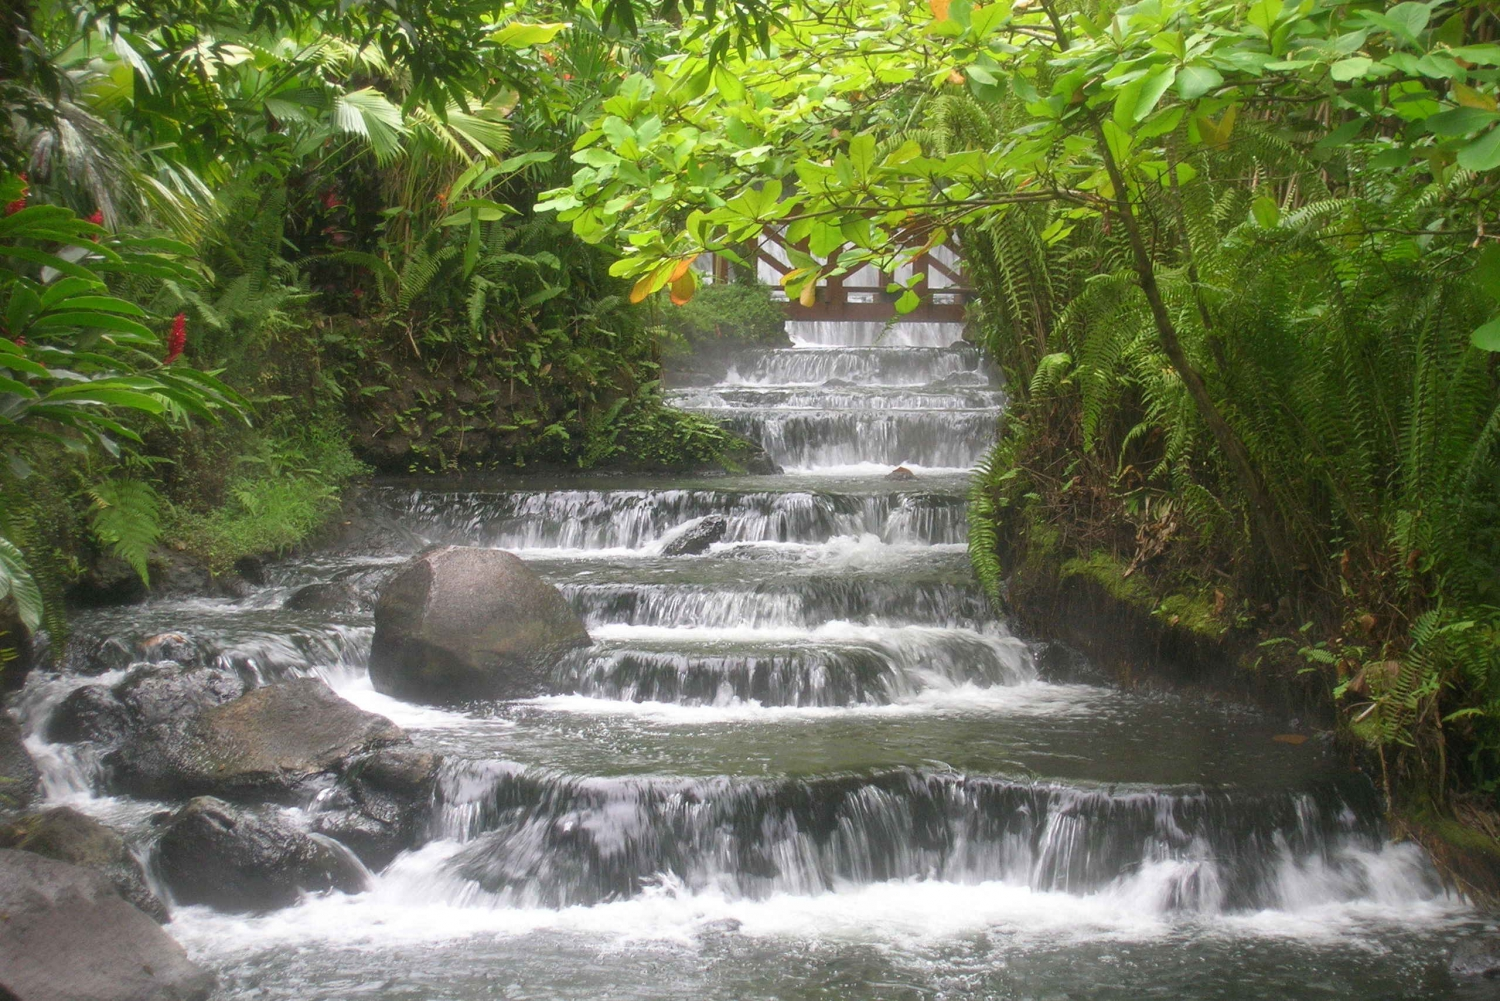 Arenal Volcano Hike and Tabacón Hot Springs from Arenal